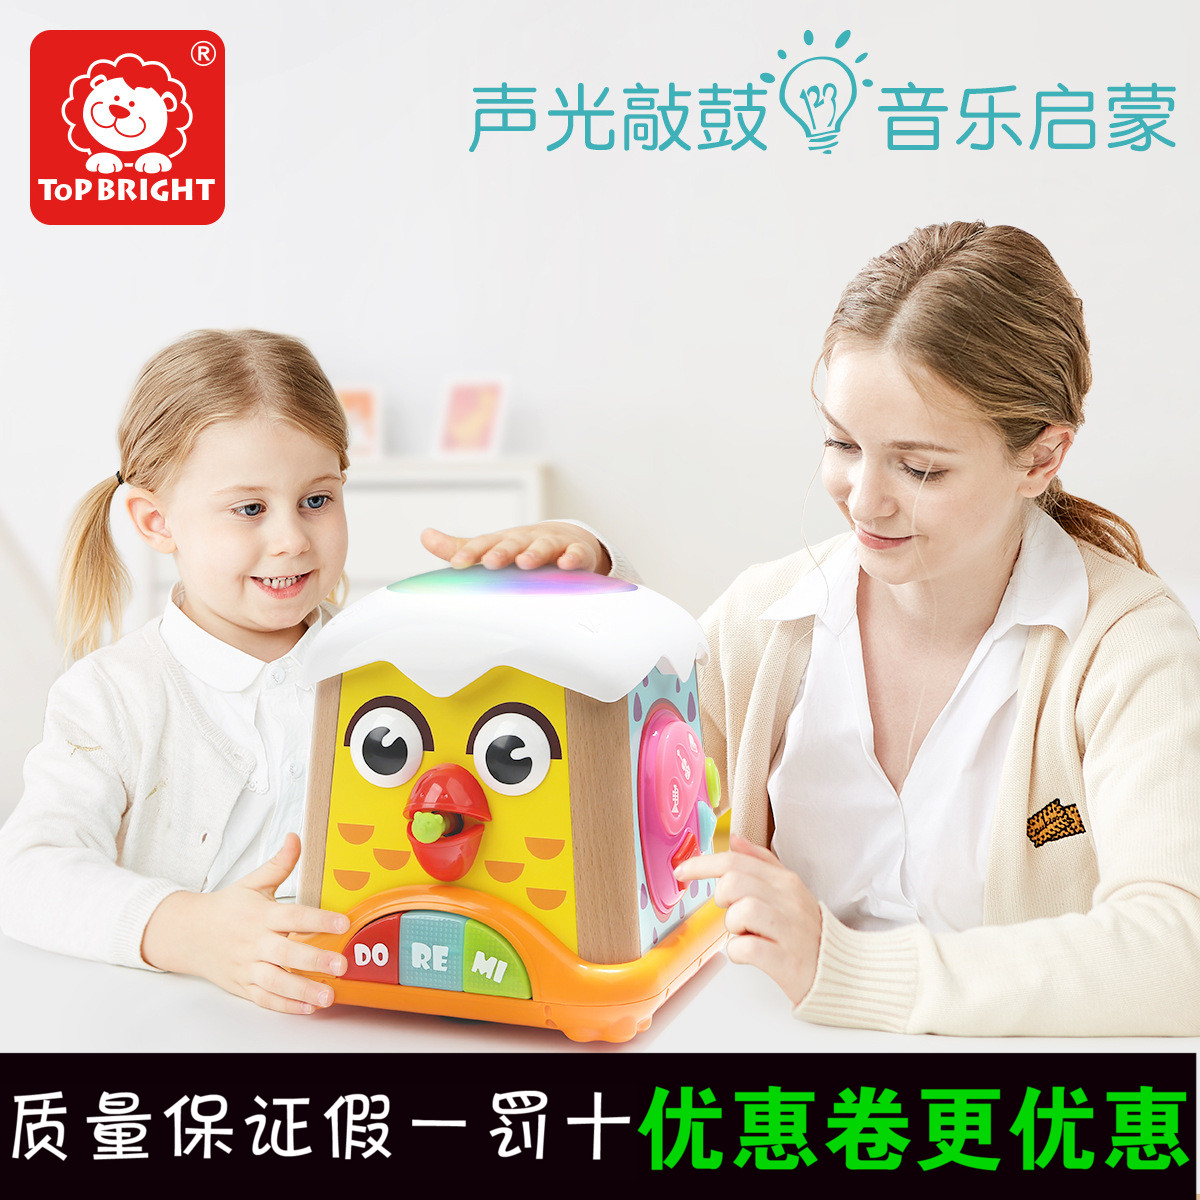 Tebaoer childrens hand beat drum multifunctional hexahedron music early education educational toy